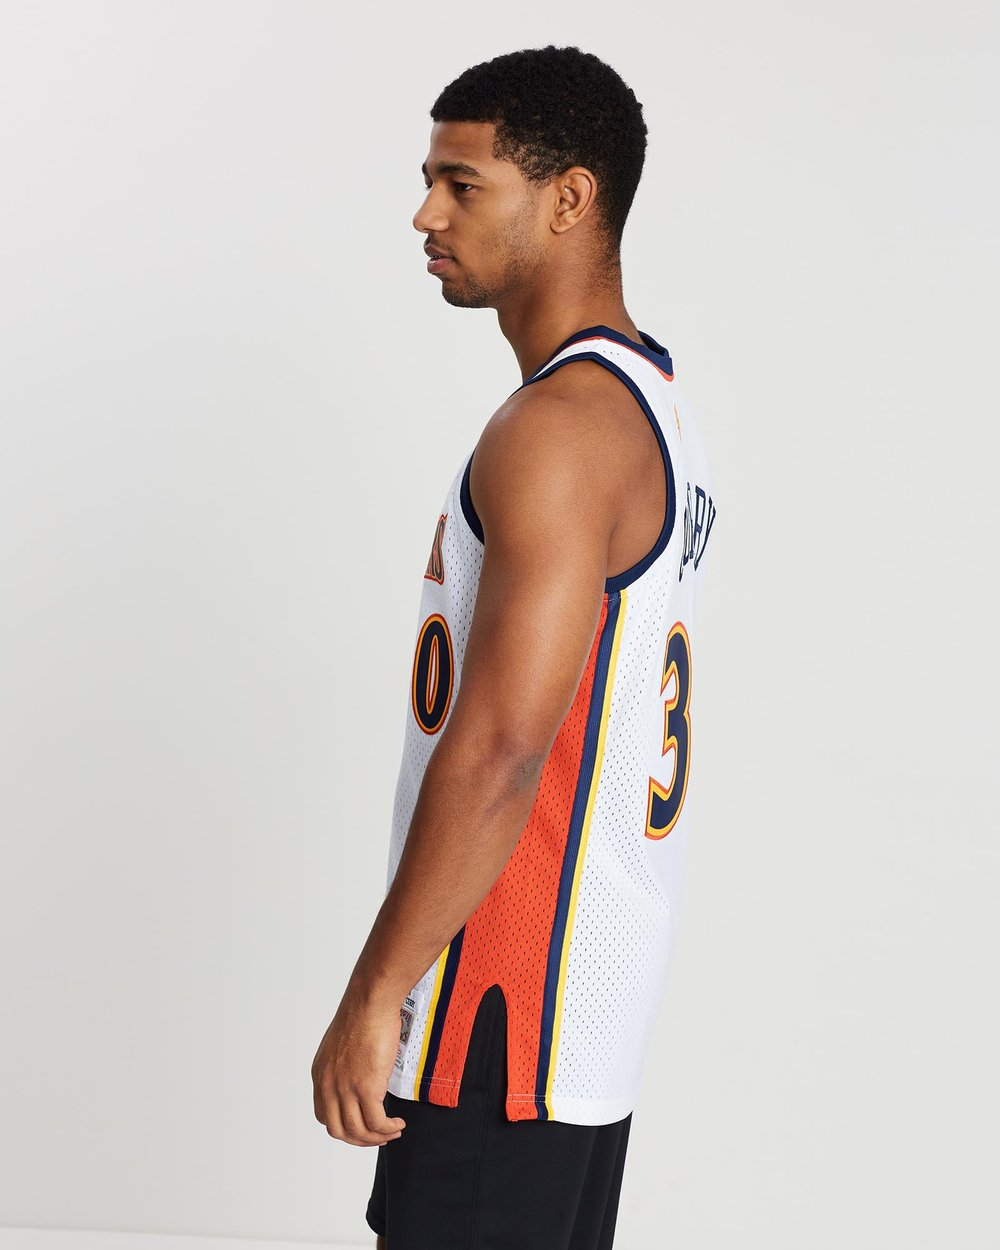 reputable site 2b909 dc980 Golden State Warriors Stephen Curry 2009-10 Hardwood Classics Home Jersey